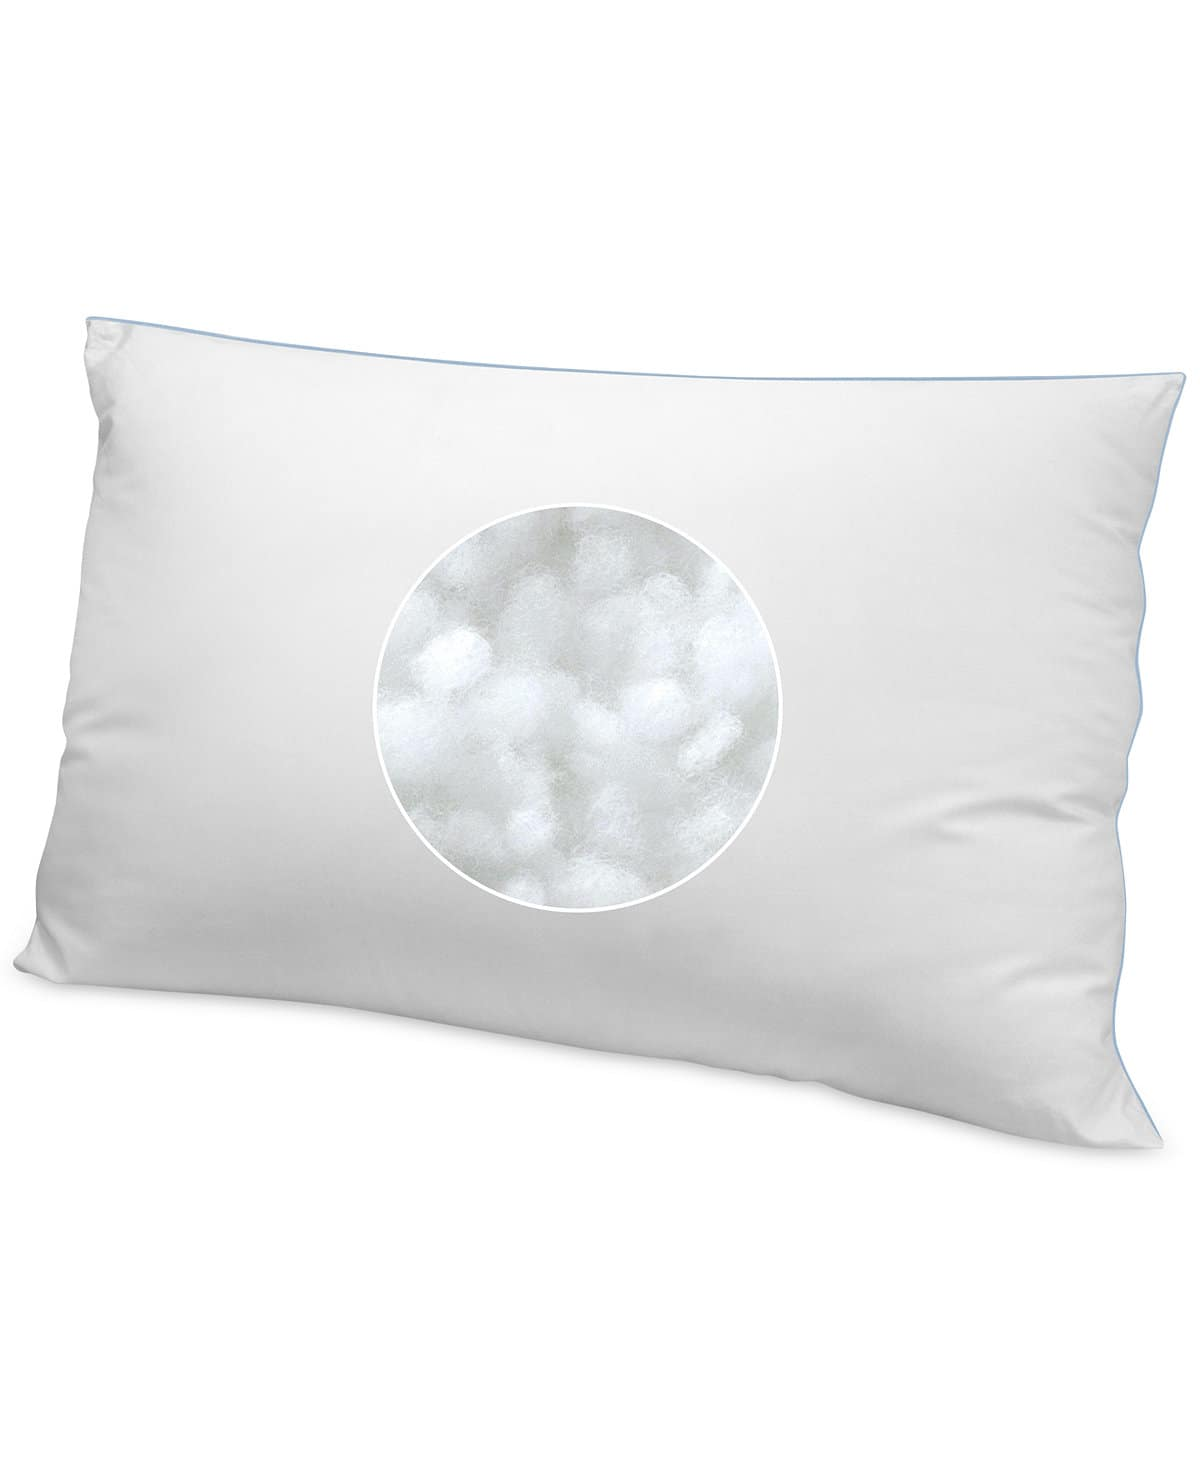 SensorGel Any Position Standard Pillow $5.99 + Free In-Store Pickup